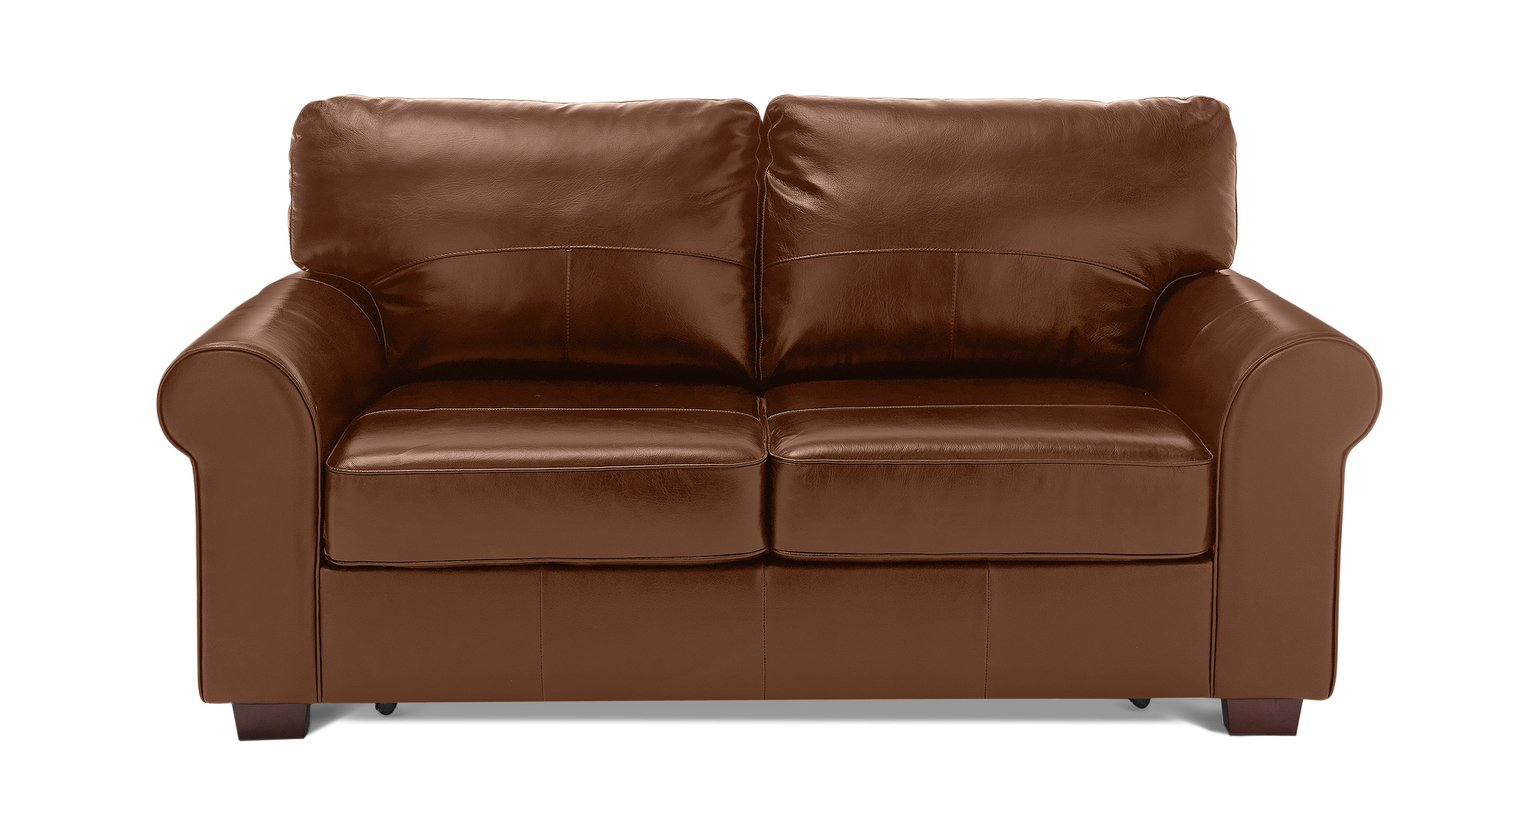 Sofas At Argos Sale On Argos Home - Salisbury - 2 Seater Leather - Sofa